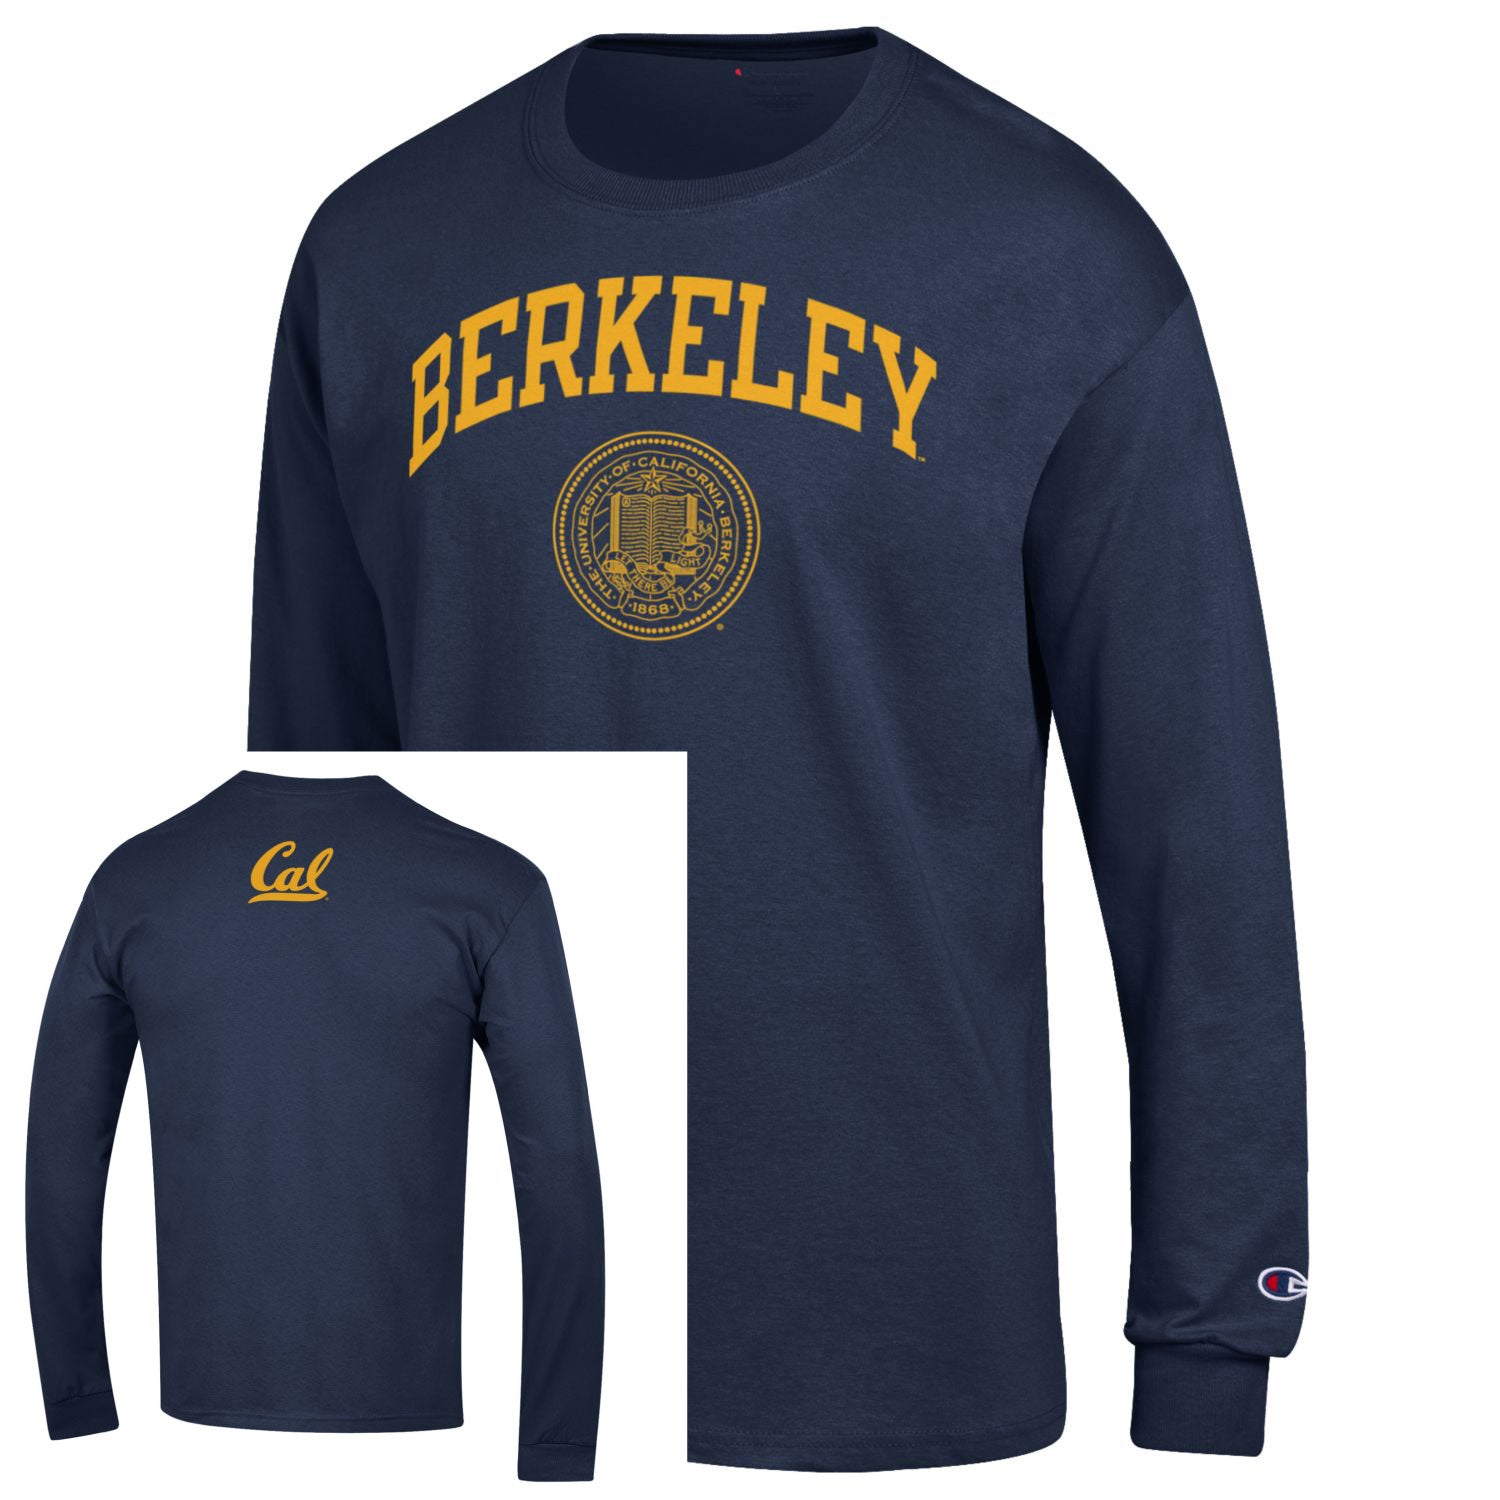 9c26a9647515 UC Berkeley Cal Champion Men's Long Sleeve T-Shirt - Navy – Shop ...